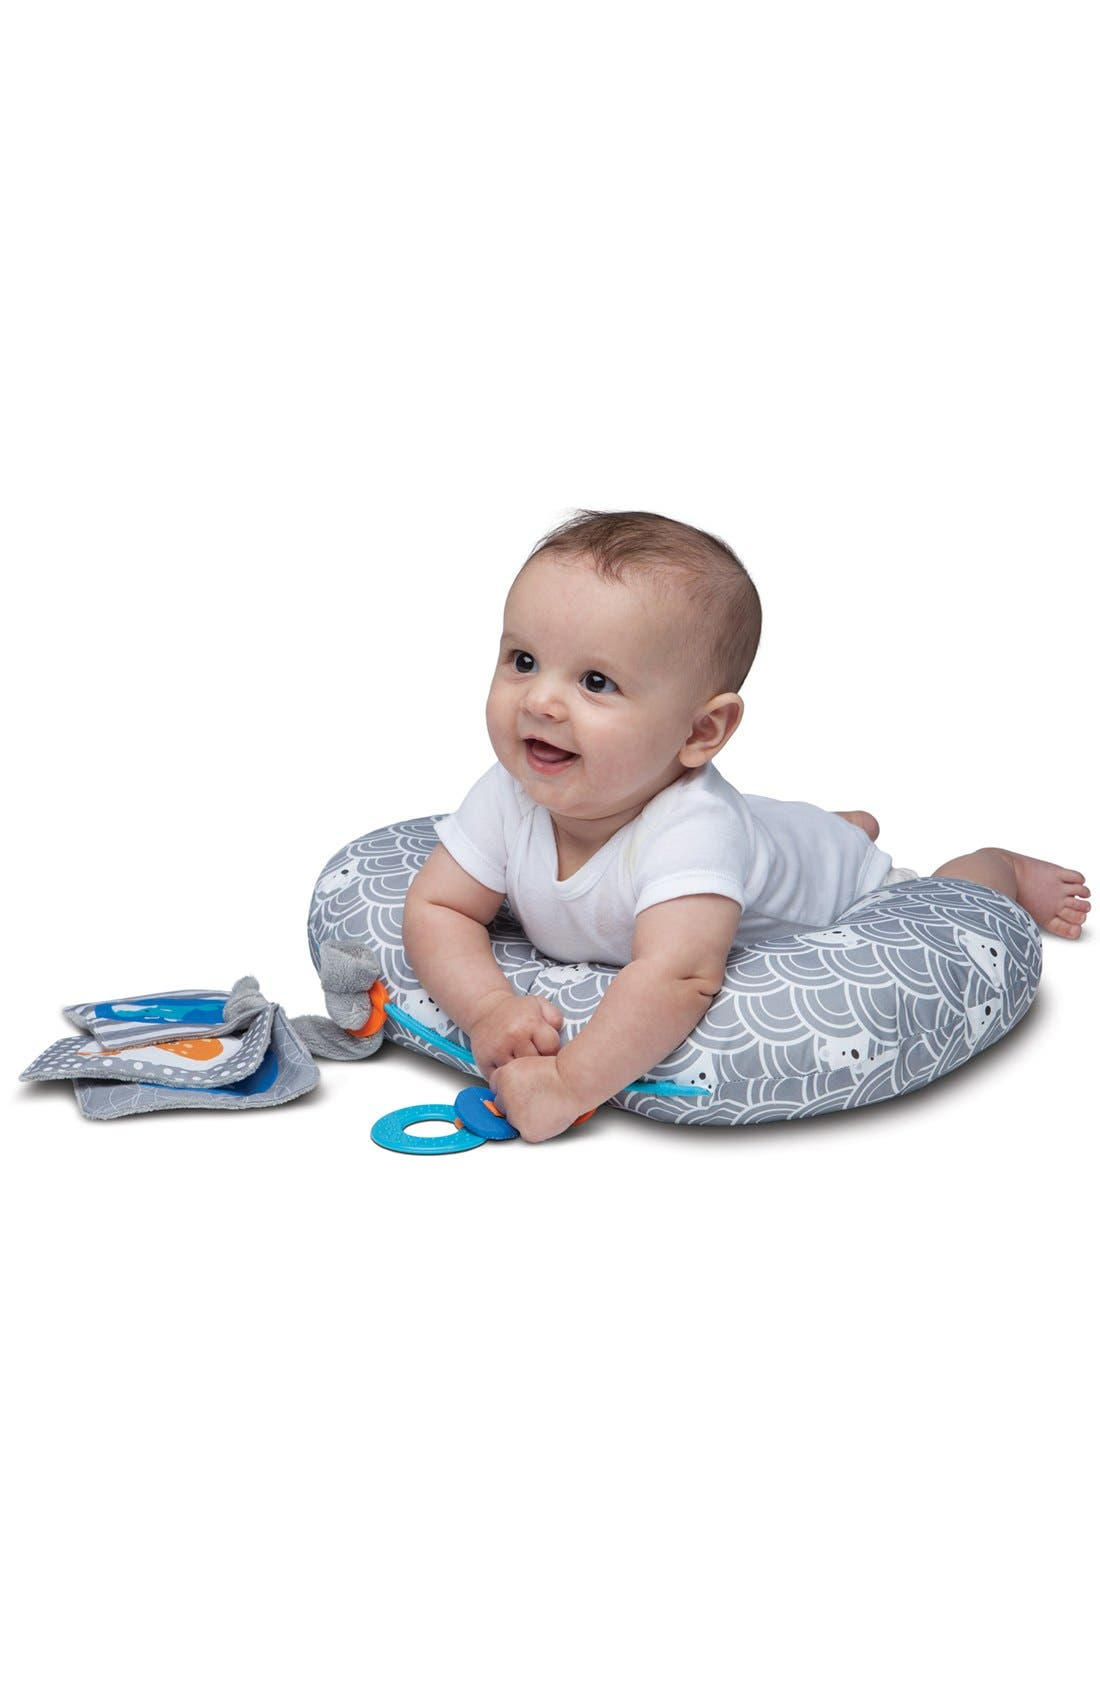 BOPPY, Tummy Time - SlideLine Collection Mini Pillow, Book & Teething Ring, Alternate thumbnail 4, color, 020